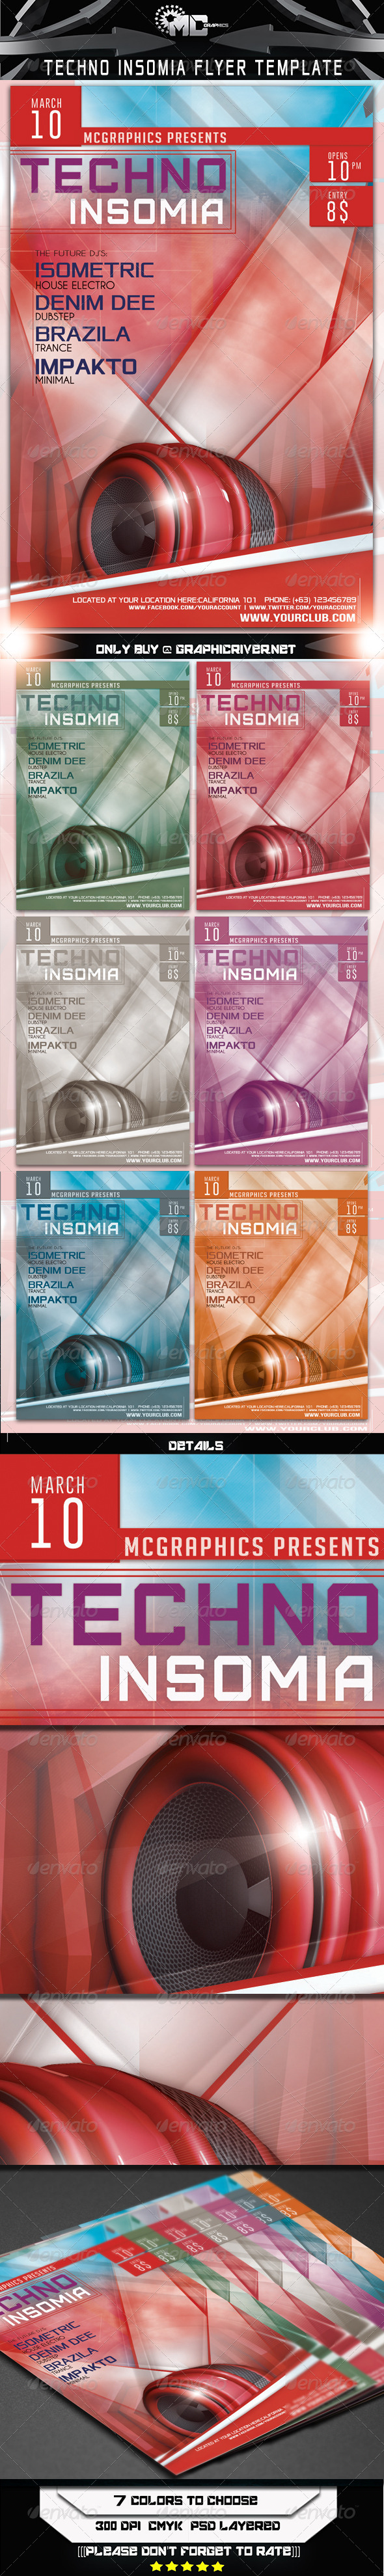 Techno Insomia Flyer Template - Flyers Print Templates